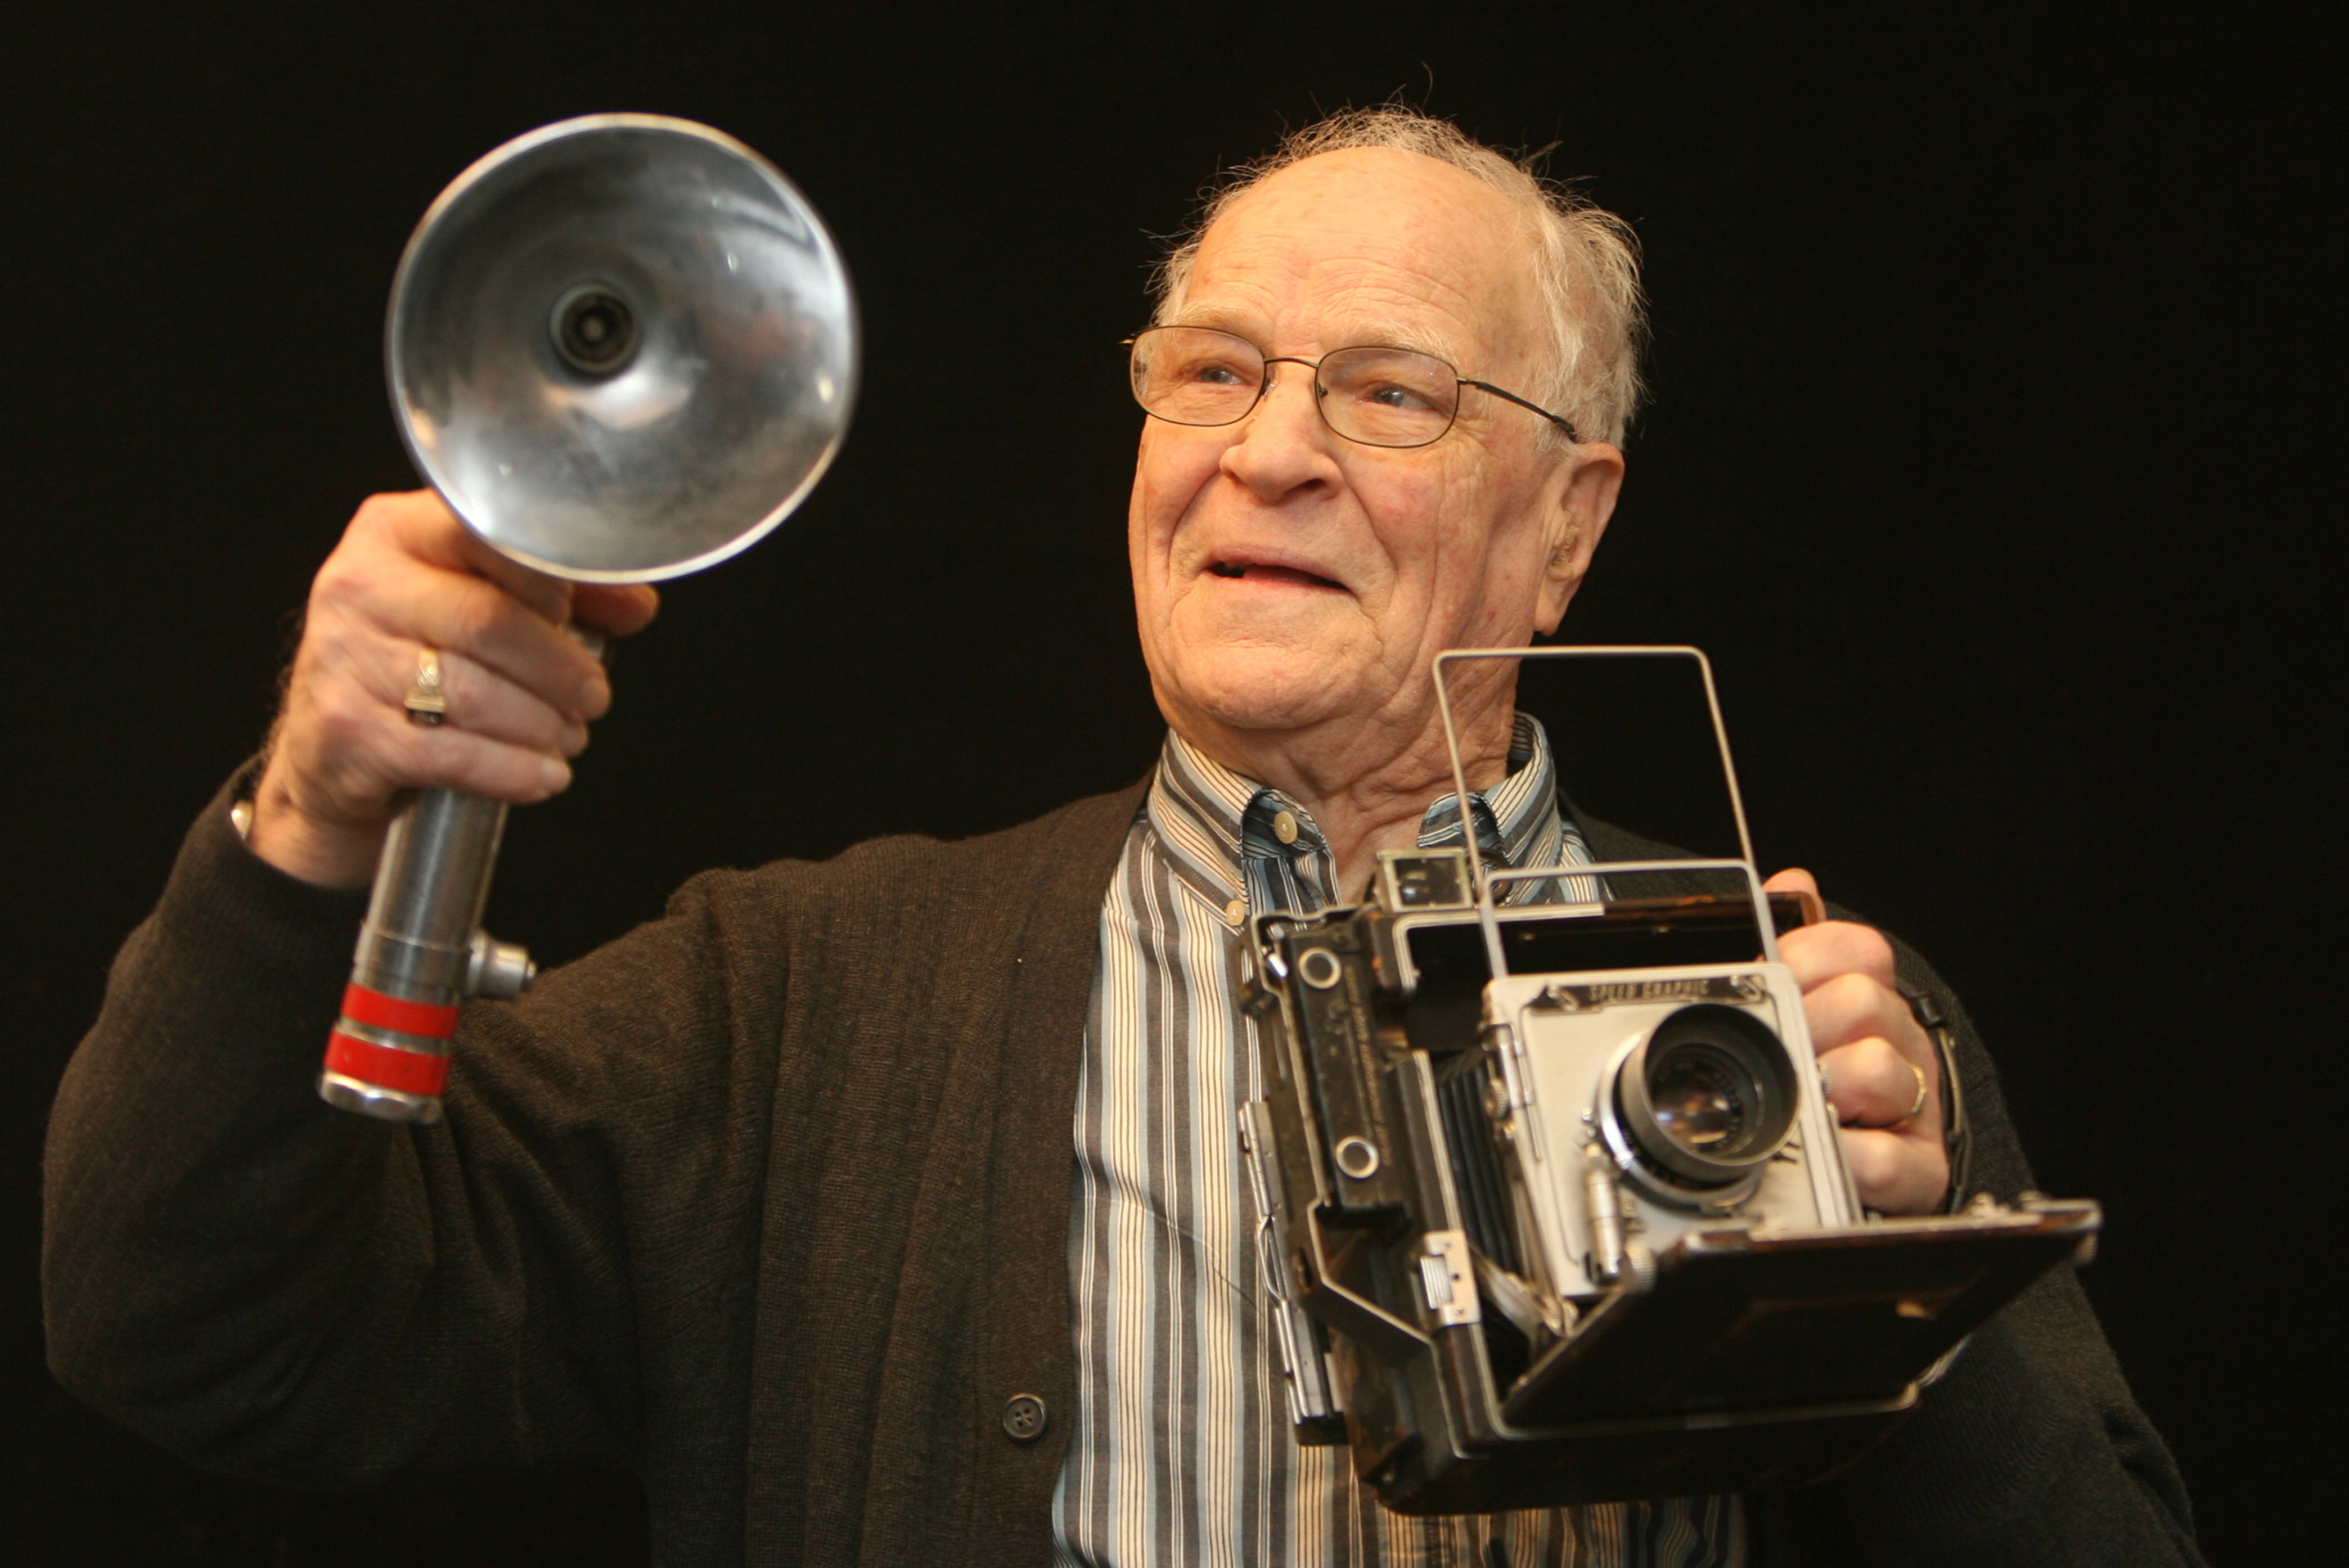 Elwin Musser displays the gear he used as a Globe Gazette photographer.